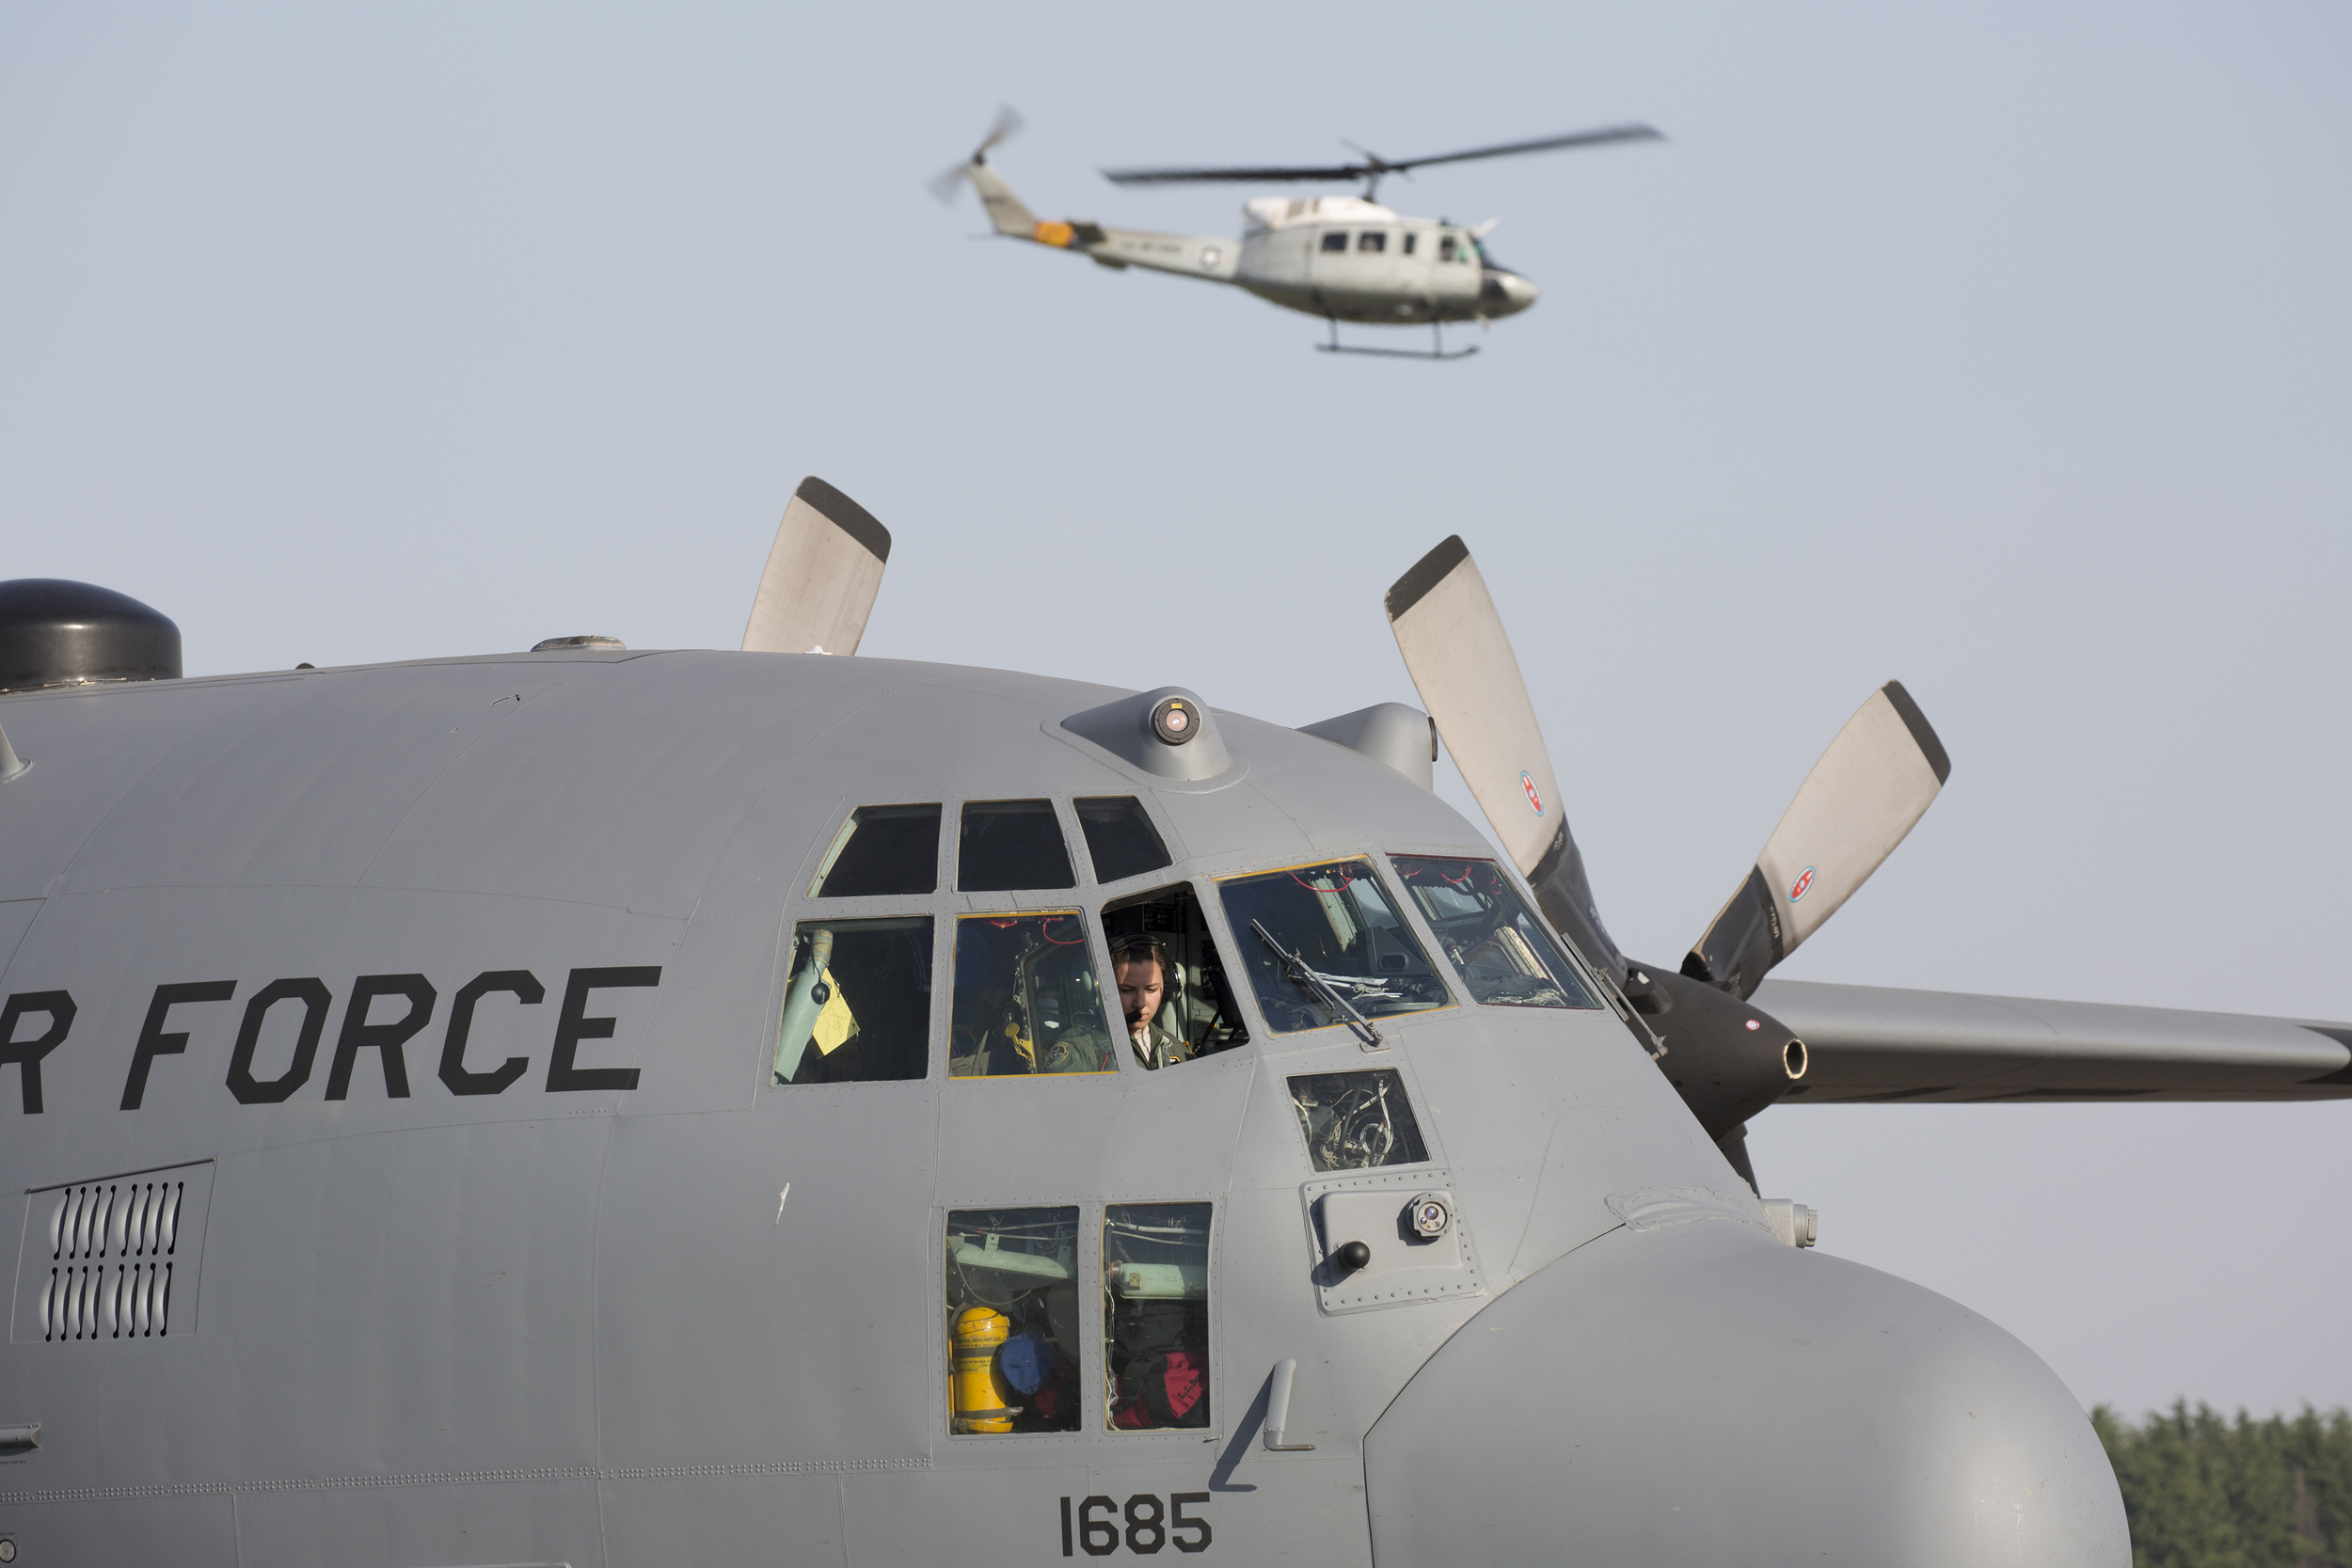 1st Lt. Sydney Croxton, 36th Airlift Squadron C-130 Hercules pilot, performs preflight checks at Yokota Air Base, Japan, May 5, 2015. Airmen departed to conduct humanitarian assistance and disaster relief operations in support of the Government of Nepal in the wake of a 7.8 magnitude earthquake that devastated many regions of the country on April 25, 2015. (U.S. Air Force photo by Osakabe Yasuo/Released)